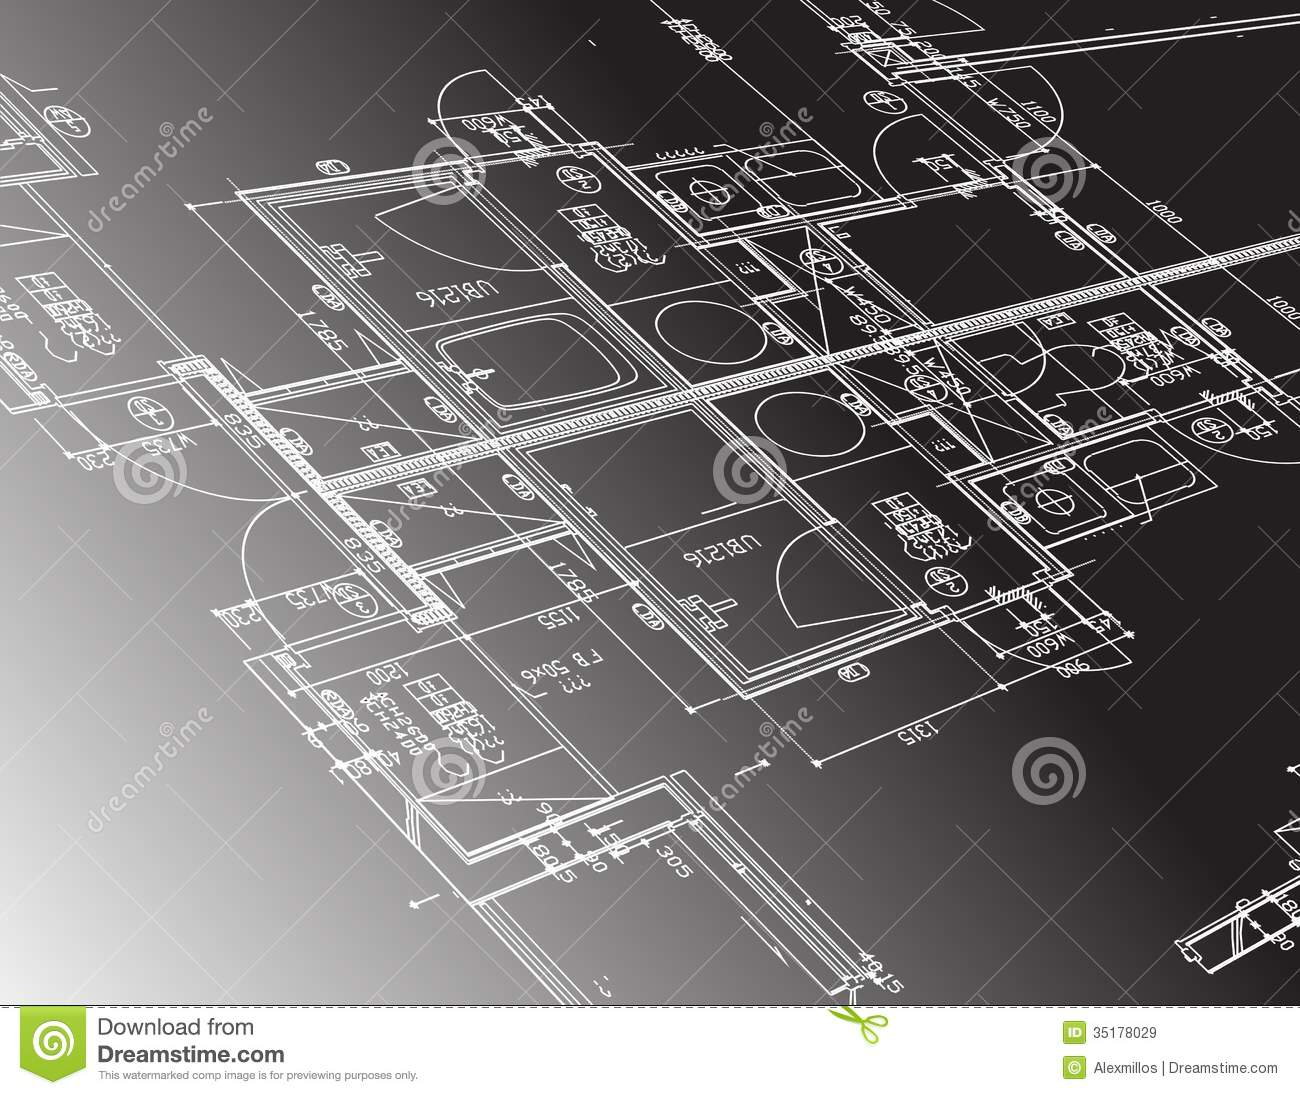 Architecture plan guide illustration design royalty free Blueprint designer free